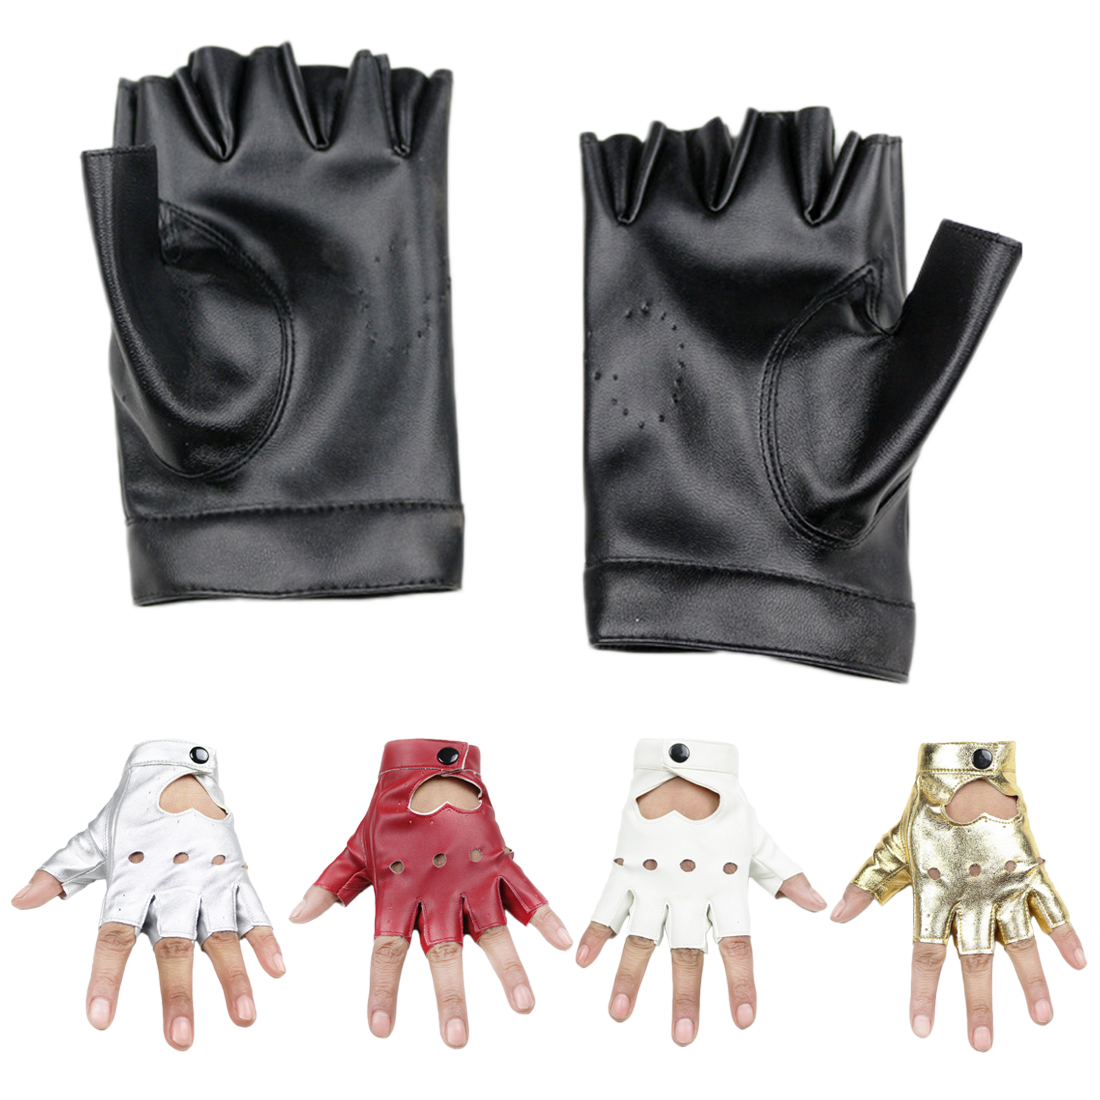 PU Leather Women Gloves Stylish Hand Warmer Winter Gloves Women Heart Hollow Warm Fingerless Gloves Gants Femme